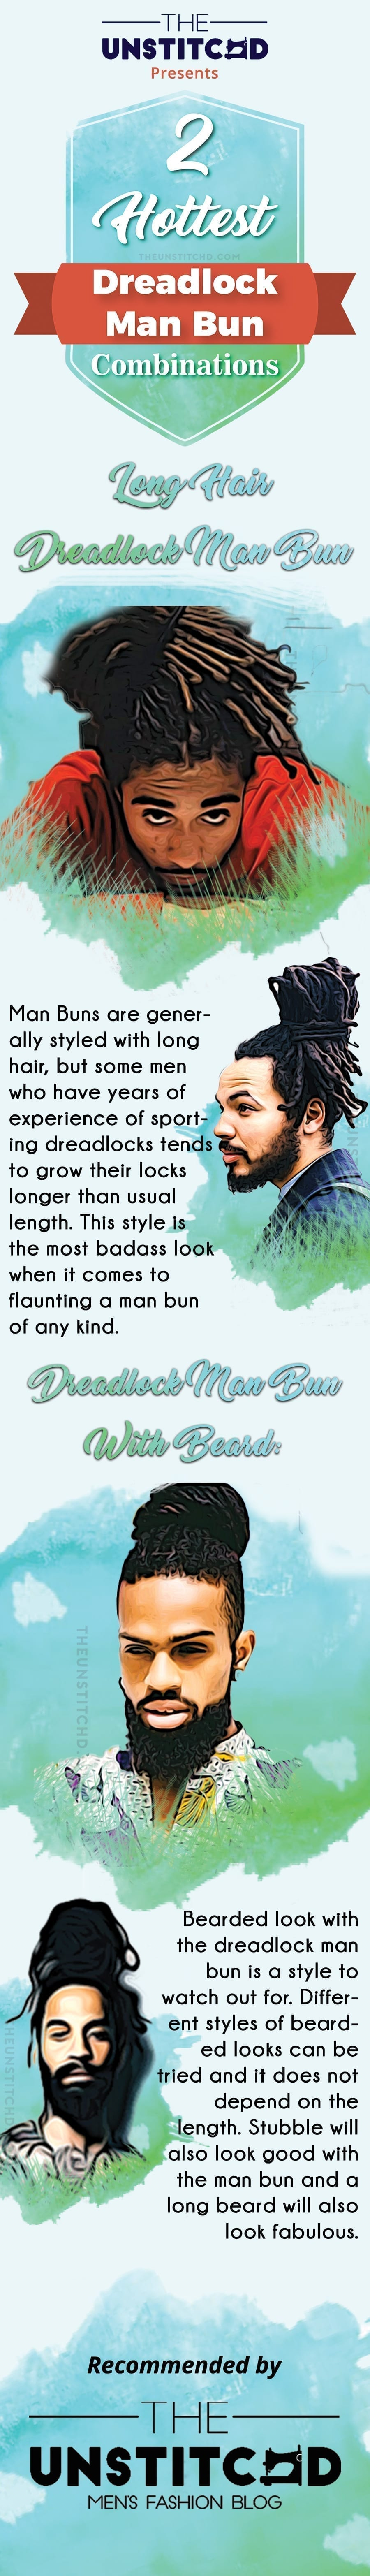 Man-Bun-Dreadlock